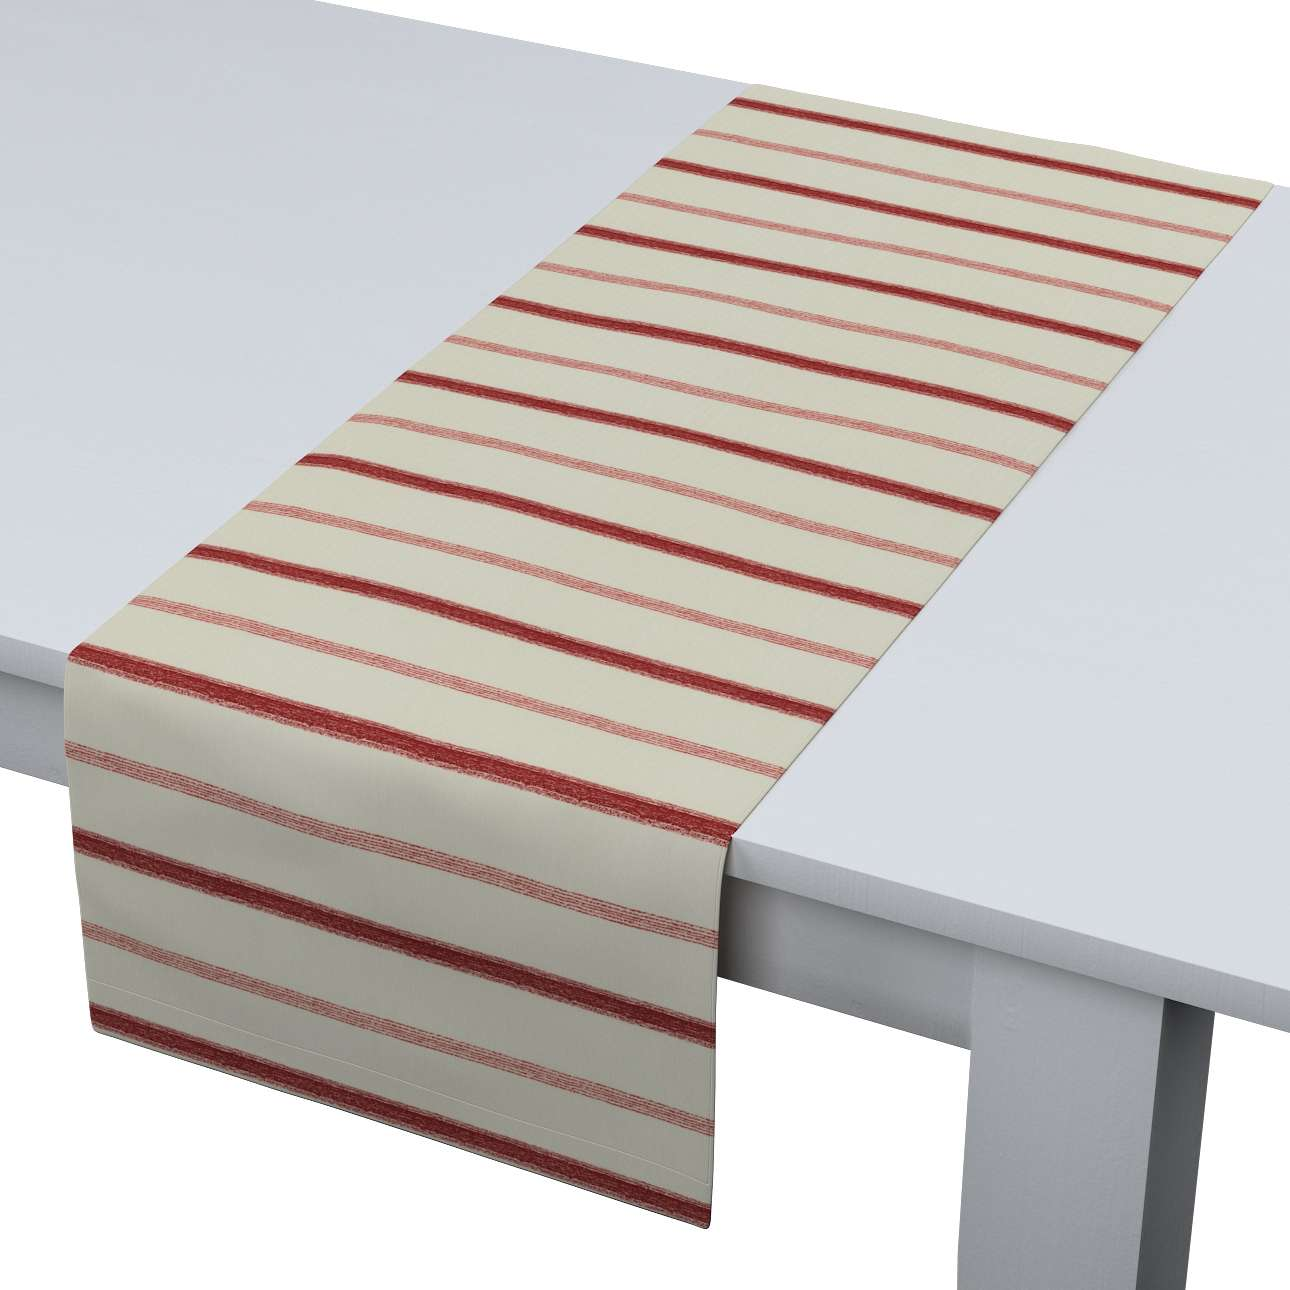 Table runner in collection Avinon, fabric: 129-15